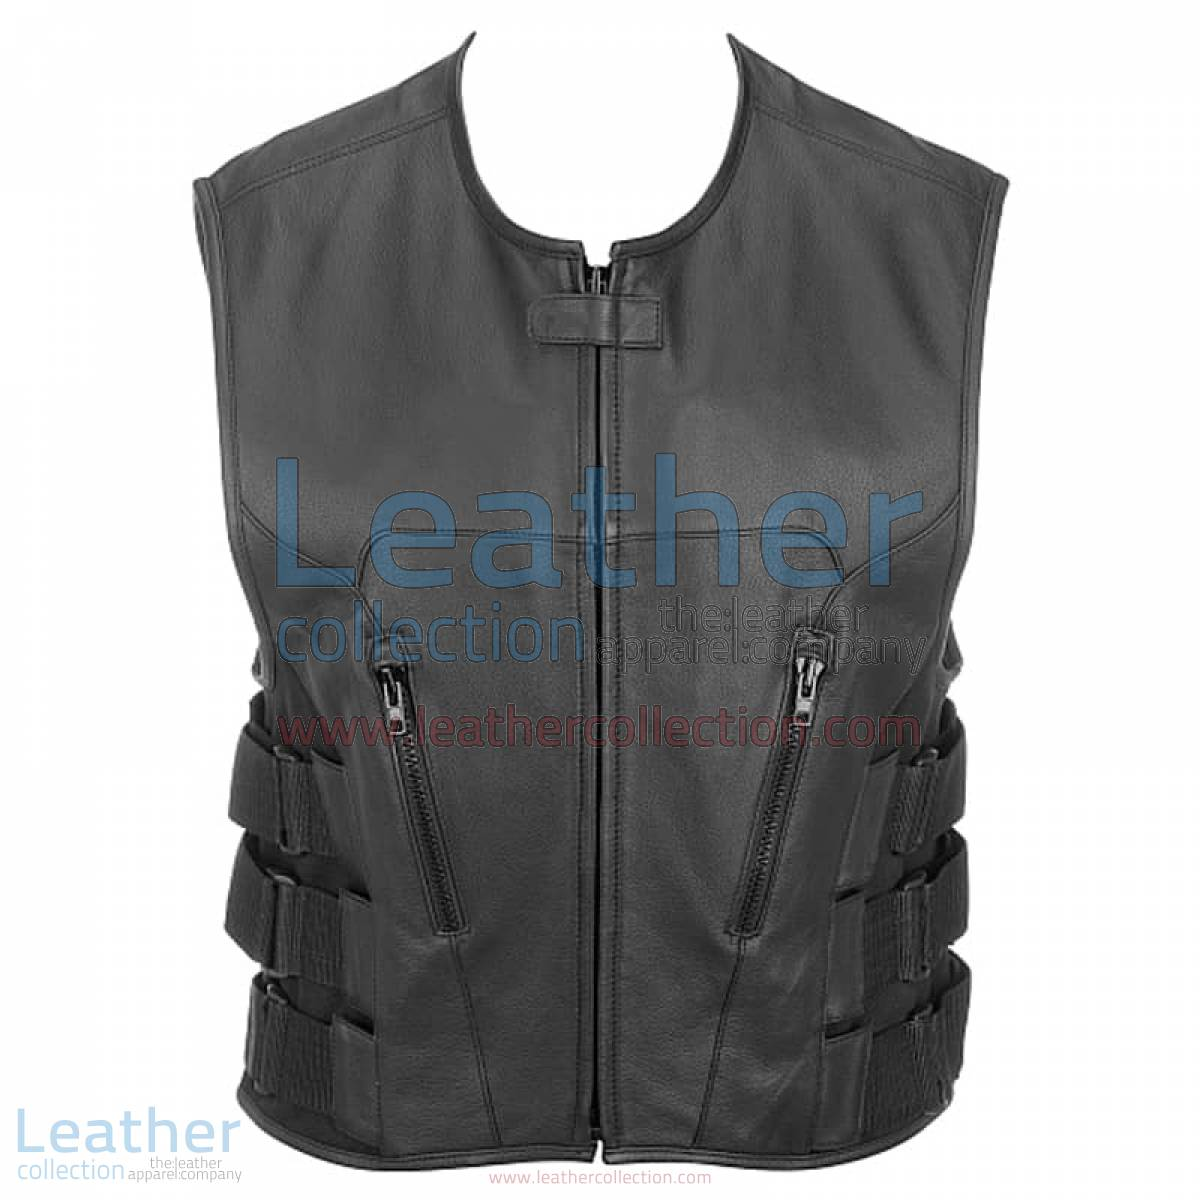 Leather Rider Vest with Velcro Side Straps | rider vest